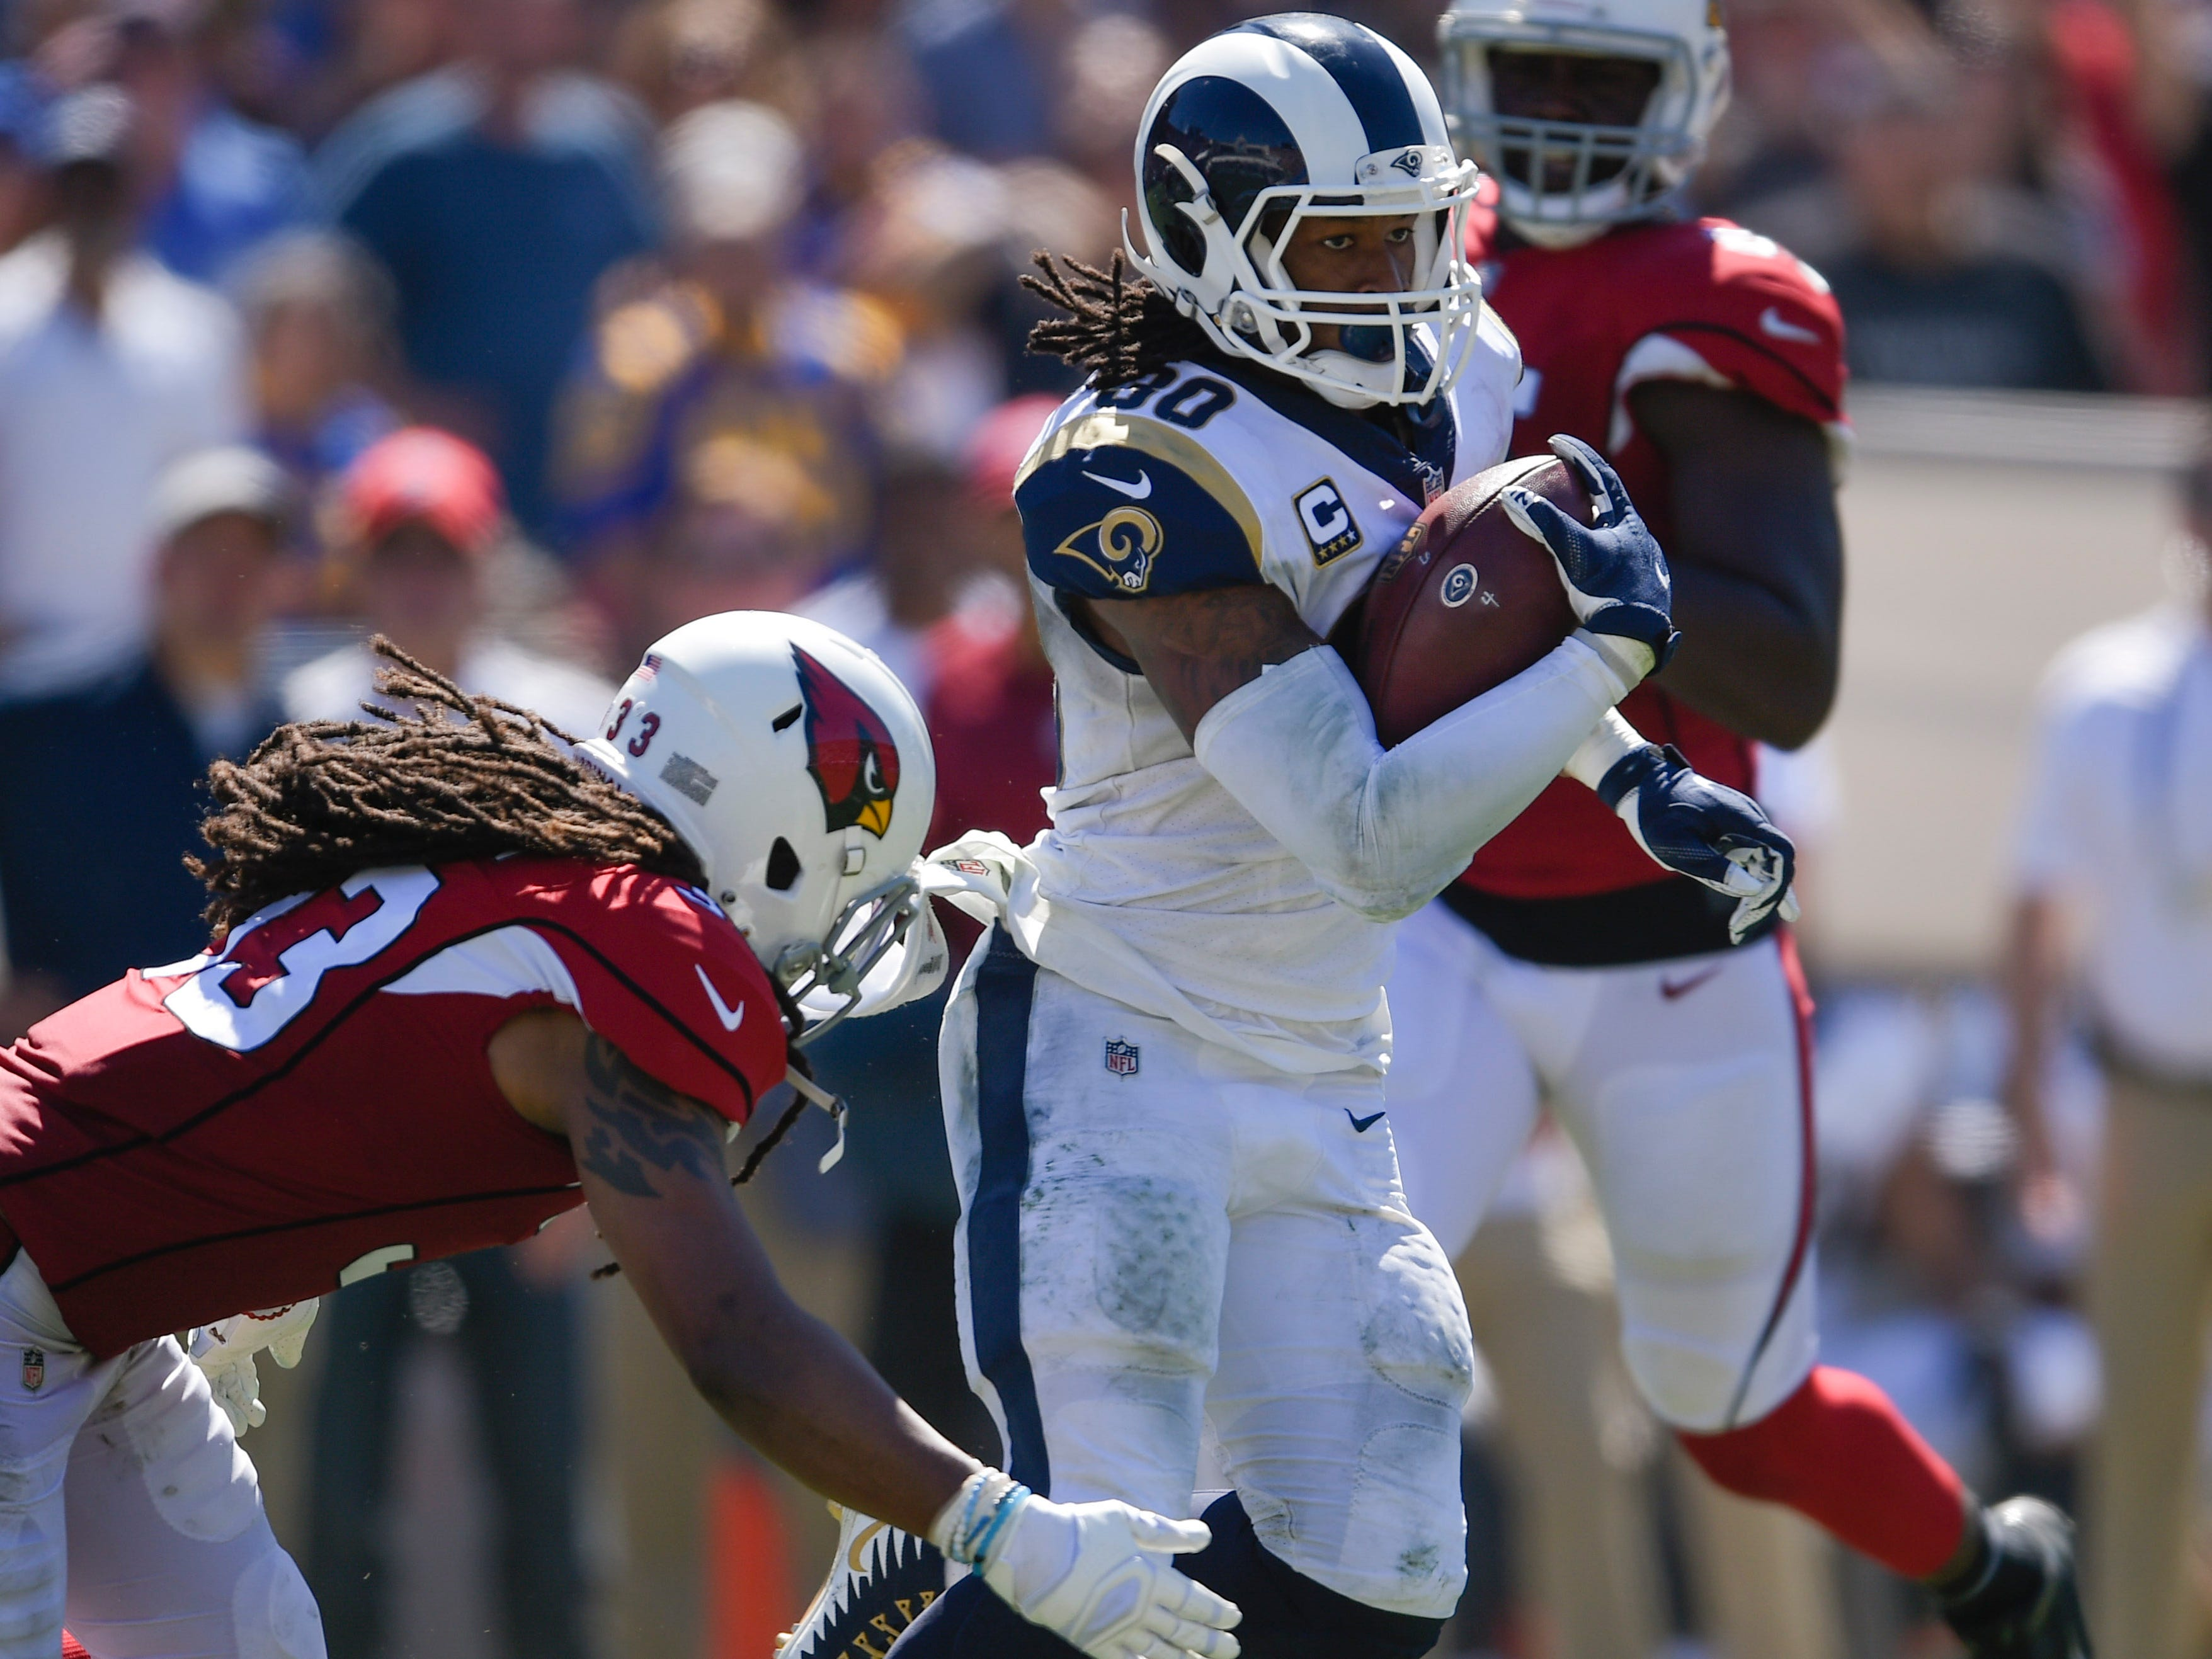 Sep 16, 2018; Los Angeles, CA, USA; Los Angeles Rams running back Todd Gurley II (30) runs the ball past Arizona Cardinals safety Tre Boston (33) during the first half at Los Angeles Memorial Coliseum. Mandatory Credit: Kelvin Kuo-USA TODAY Sports